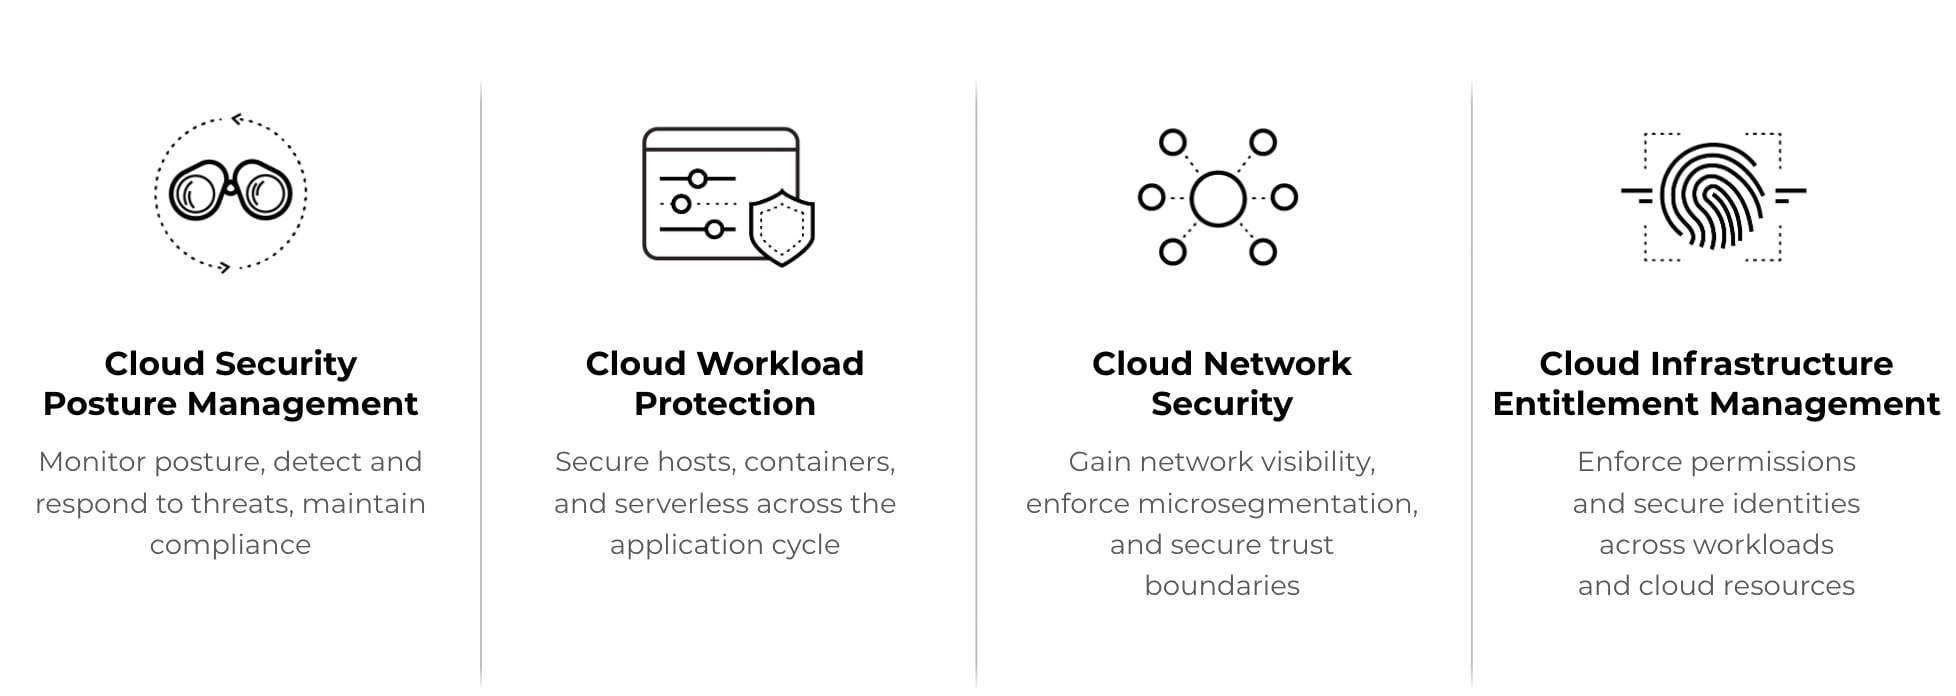 The four pillars of the Cloud Native Security Platform include Cloud Security Posture Management, Cloud Workload Protection, Cloud Network Security and Cloud Infrastructure Entitlement Management